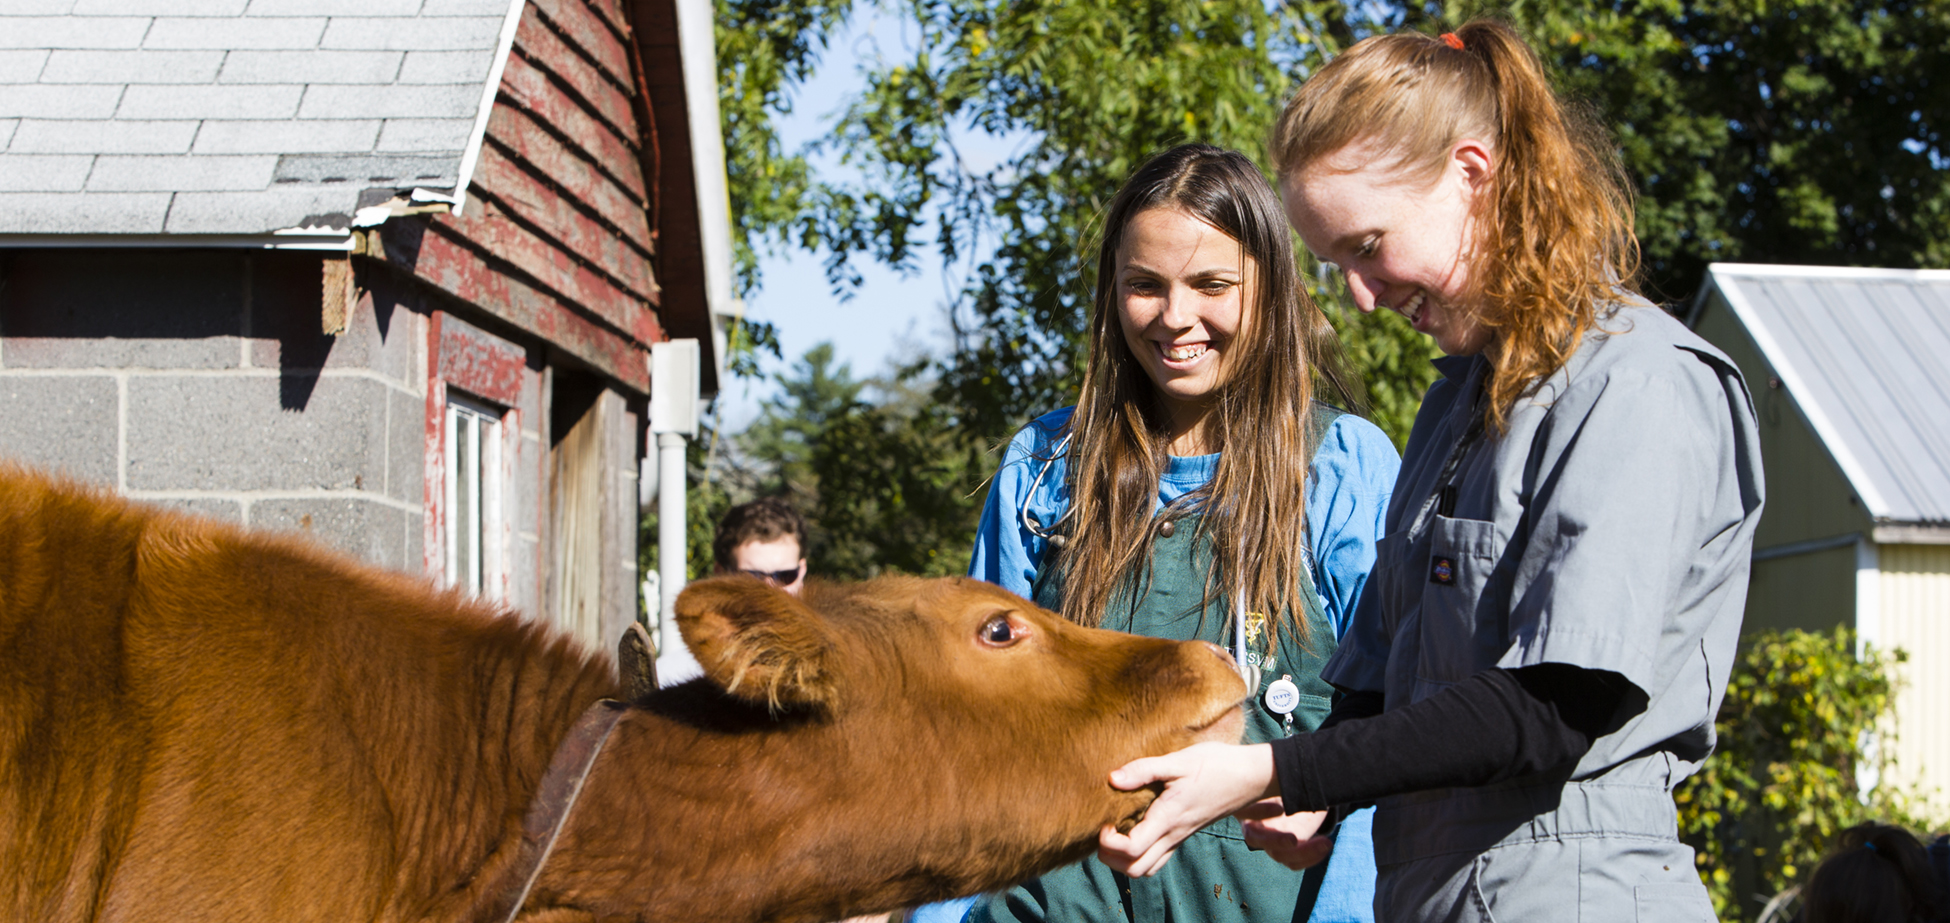 10/12/2017 - Pomfret, Conn. - Veterinary students Maria Kremerman (left) and Kelsey O'Donnell, V18, visit a young calf during a house call at B&R Simmentals farm on October 12, 2017. (Anna Miller/Tufts University) PHOTO RELEASE ON FILE